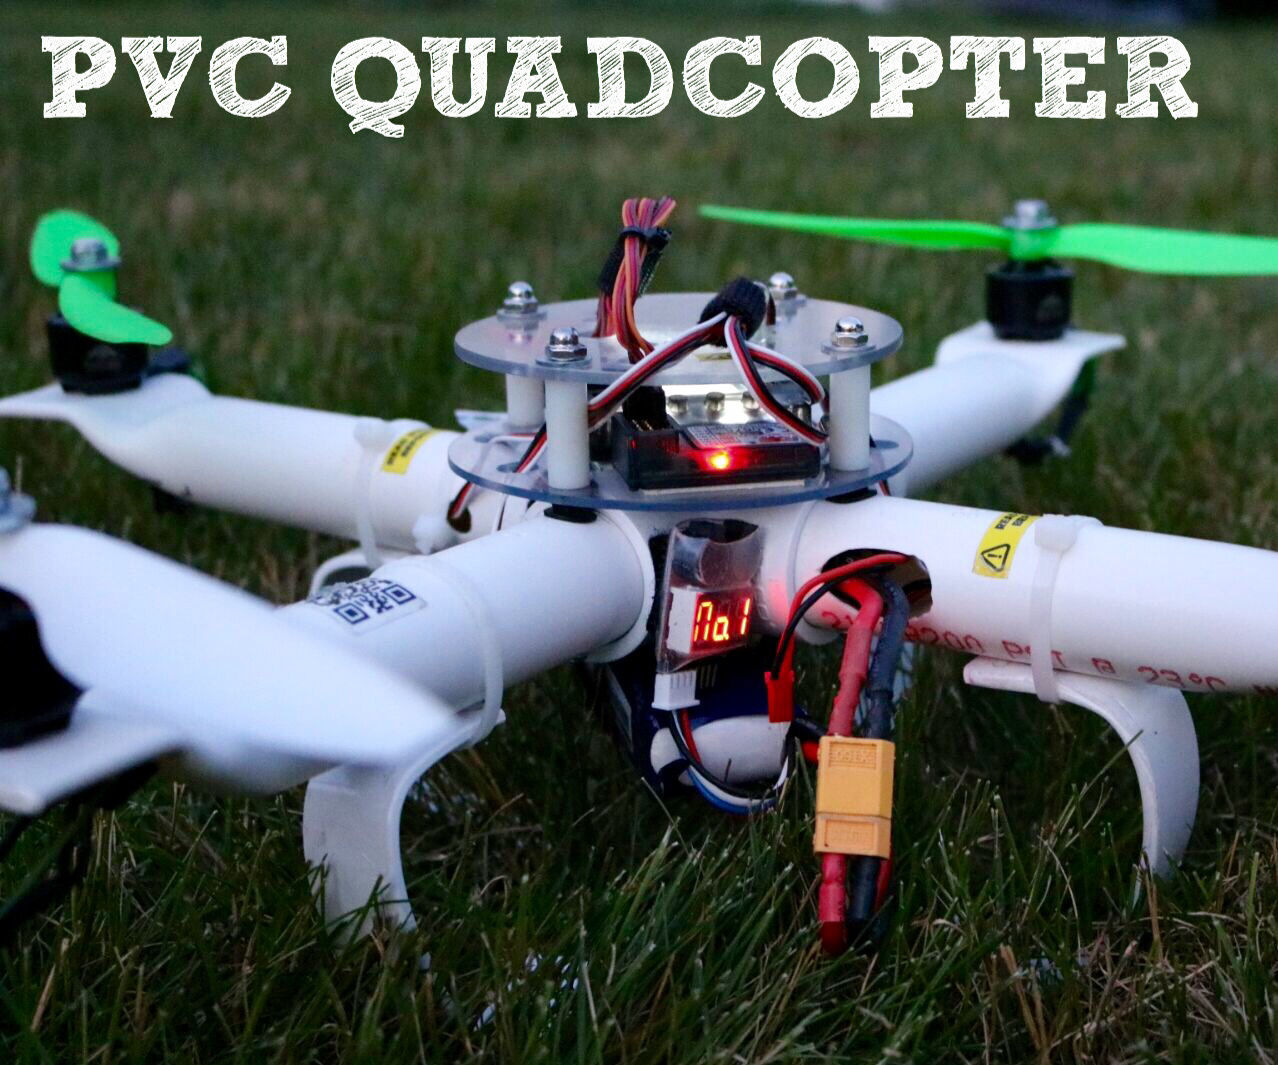 The Ultimate PVC Quadcopter